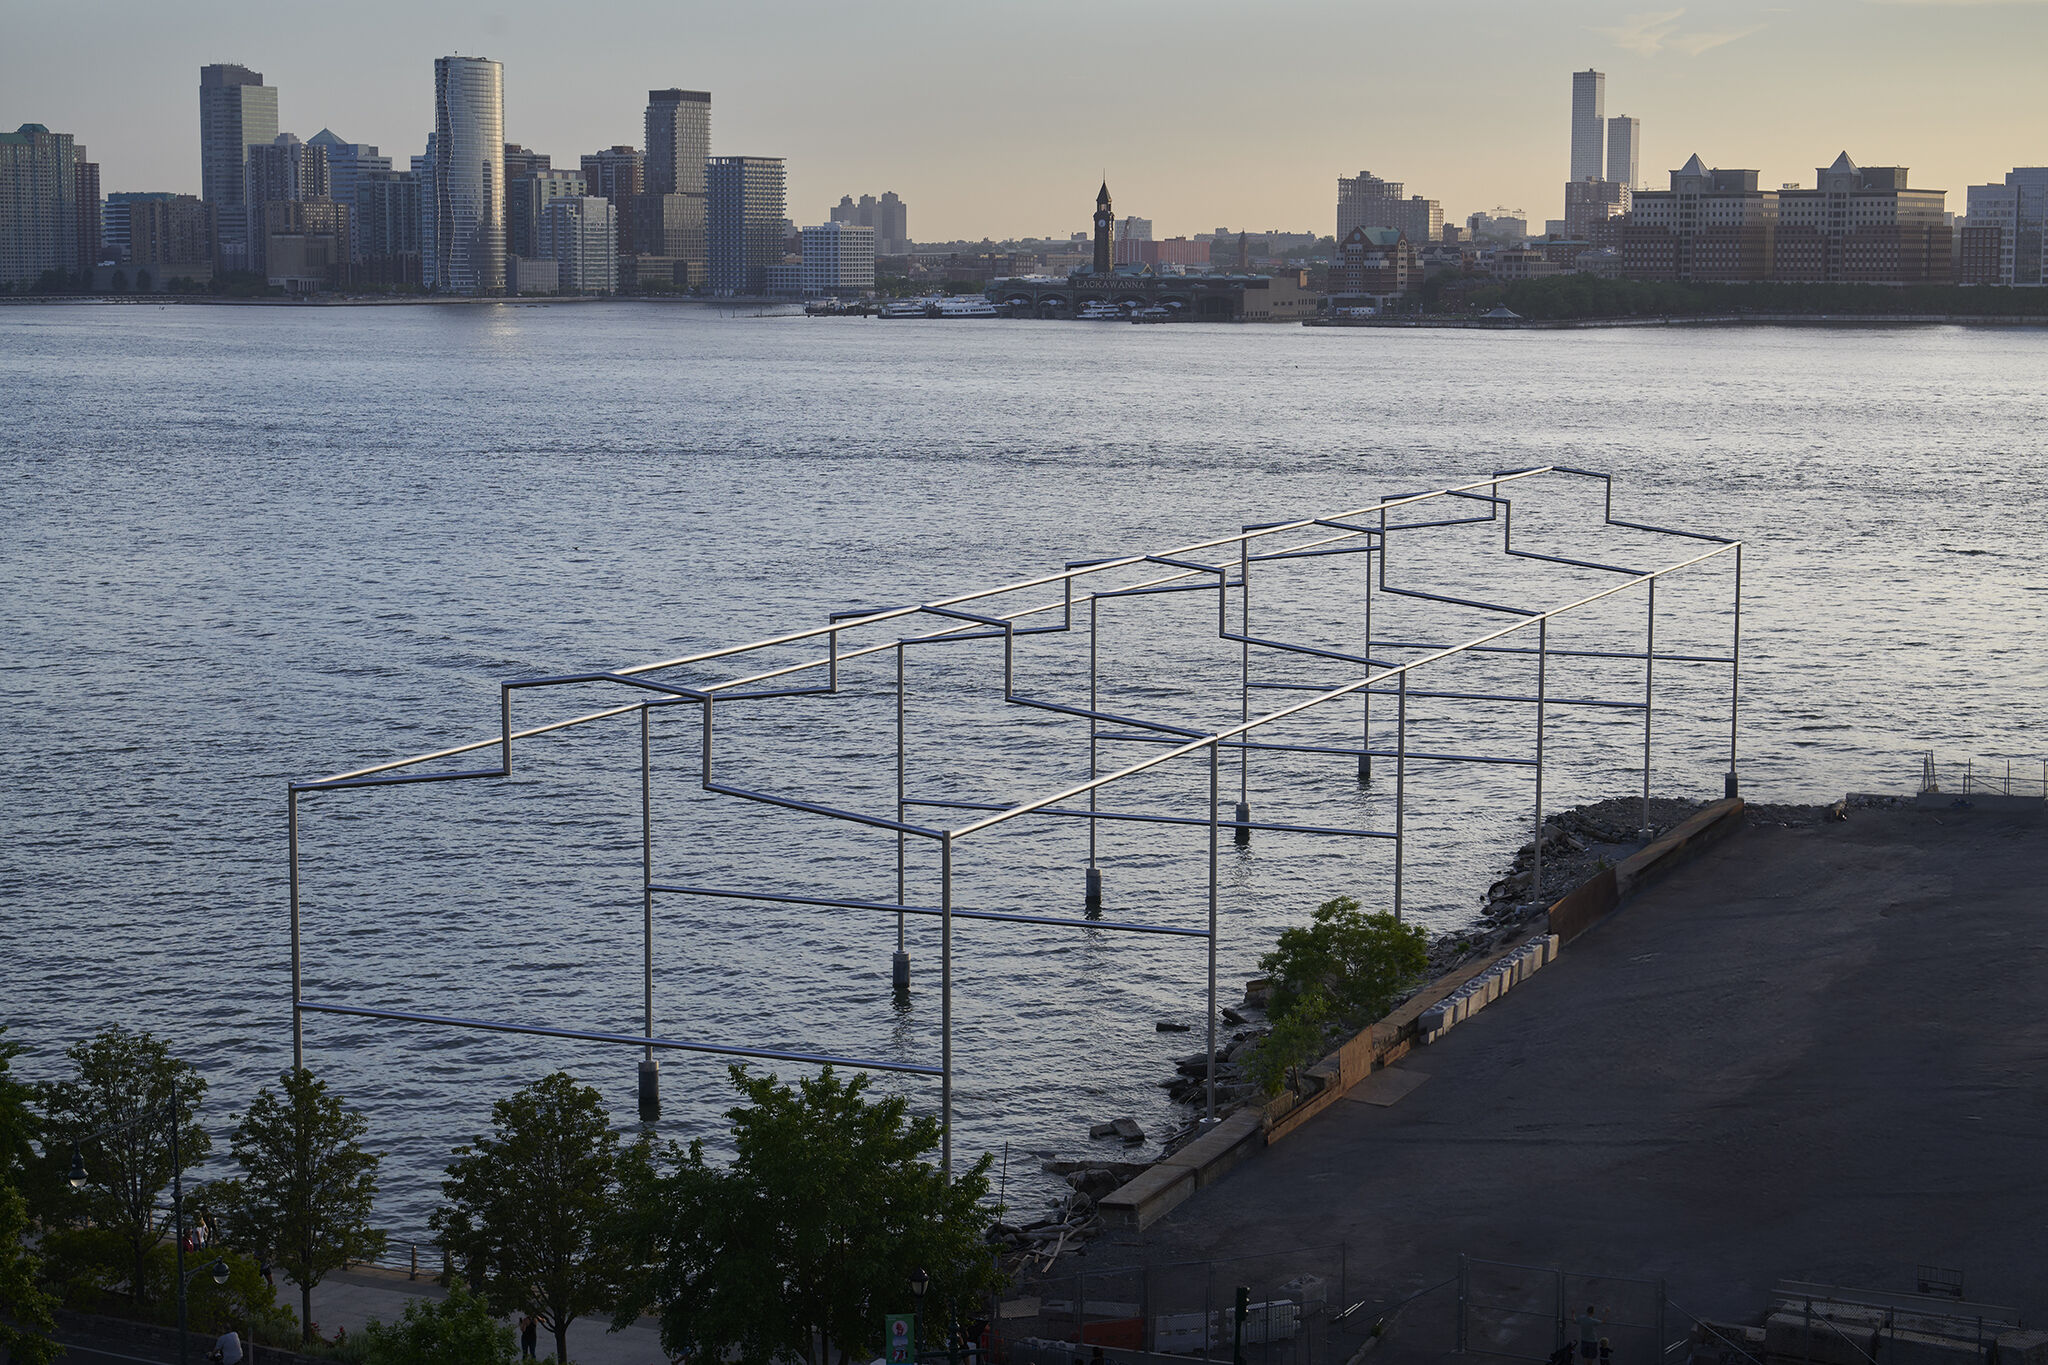 Overhead view of Day's End steel sculpture on the Hudson river at sunset, with New Jersey skyline in the background.